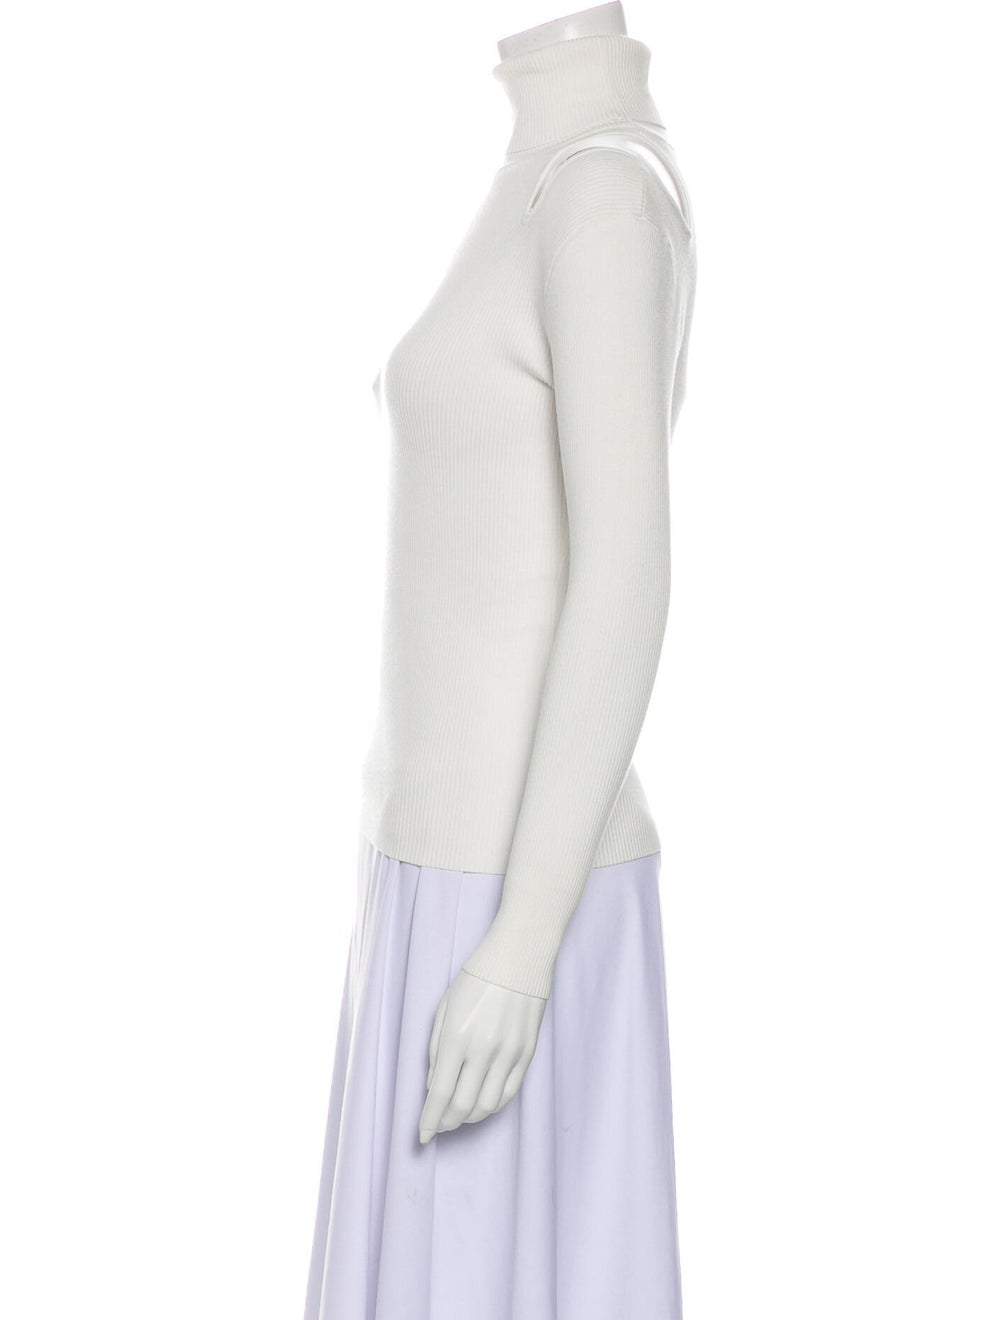 A.l.c. Turtleneck Long Sleeve Top White - image 2